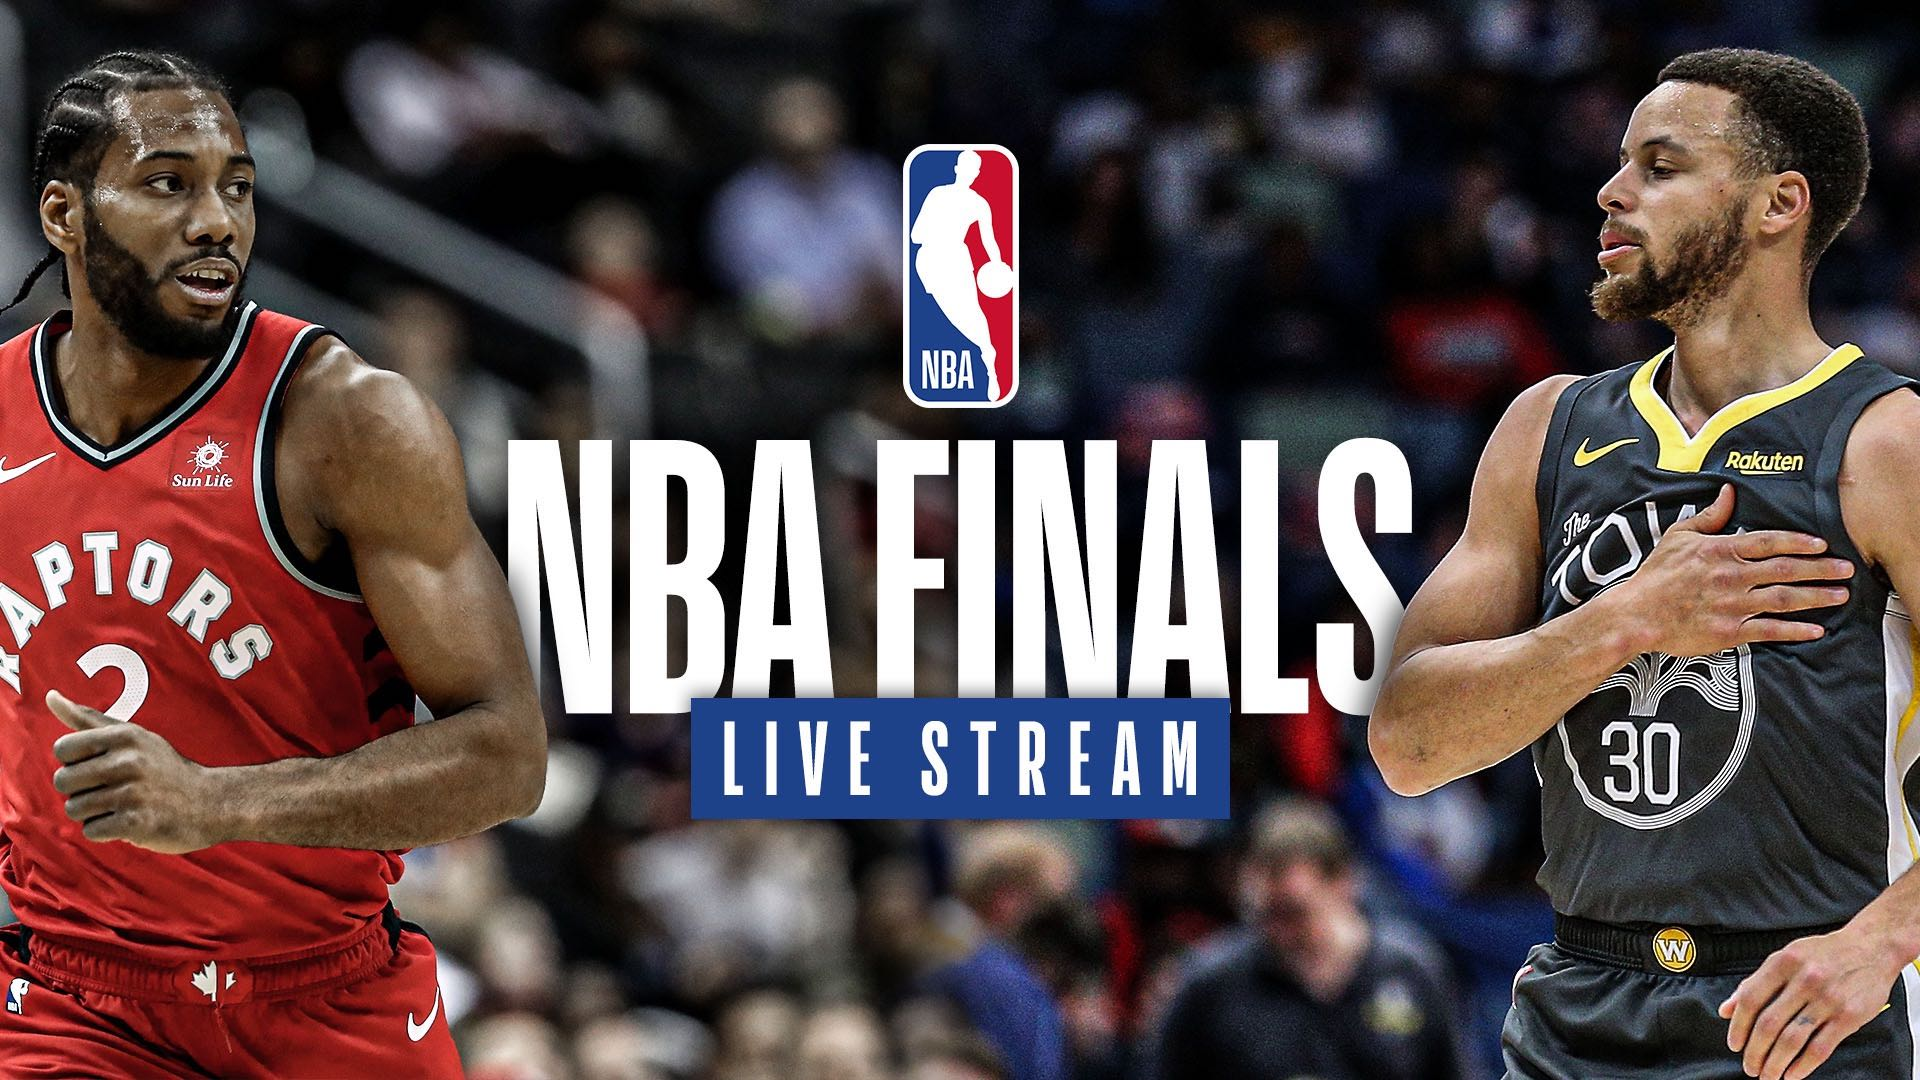 Watch Live Stream Of 2019 Nba Finals Game 6 In India On